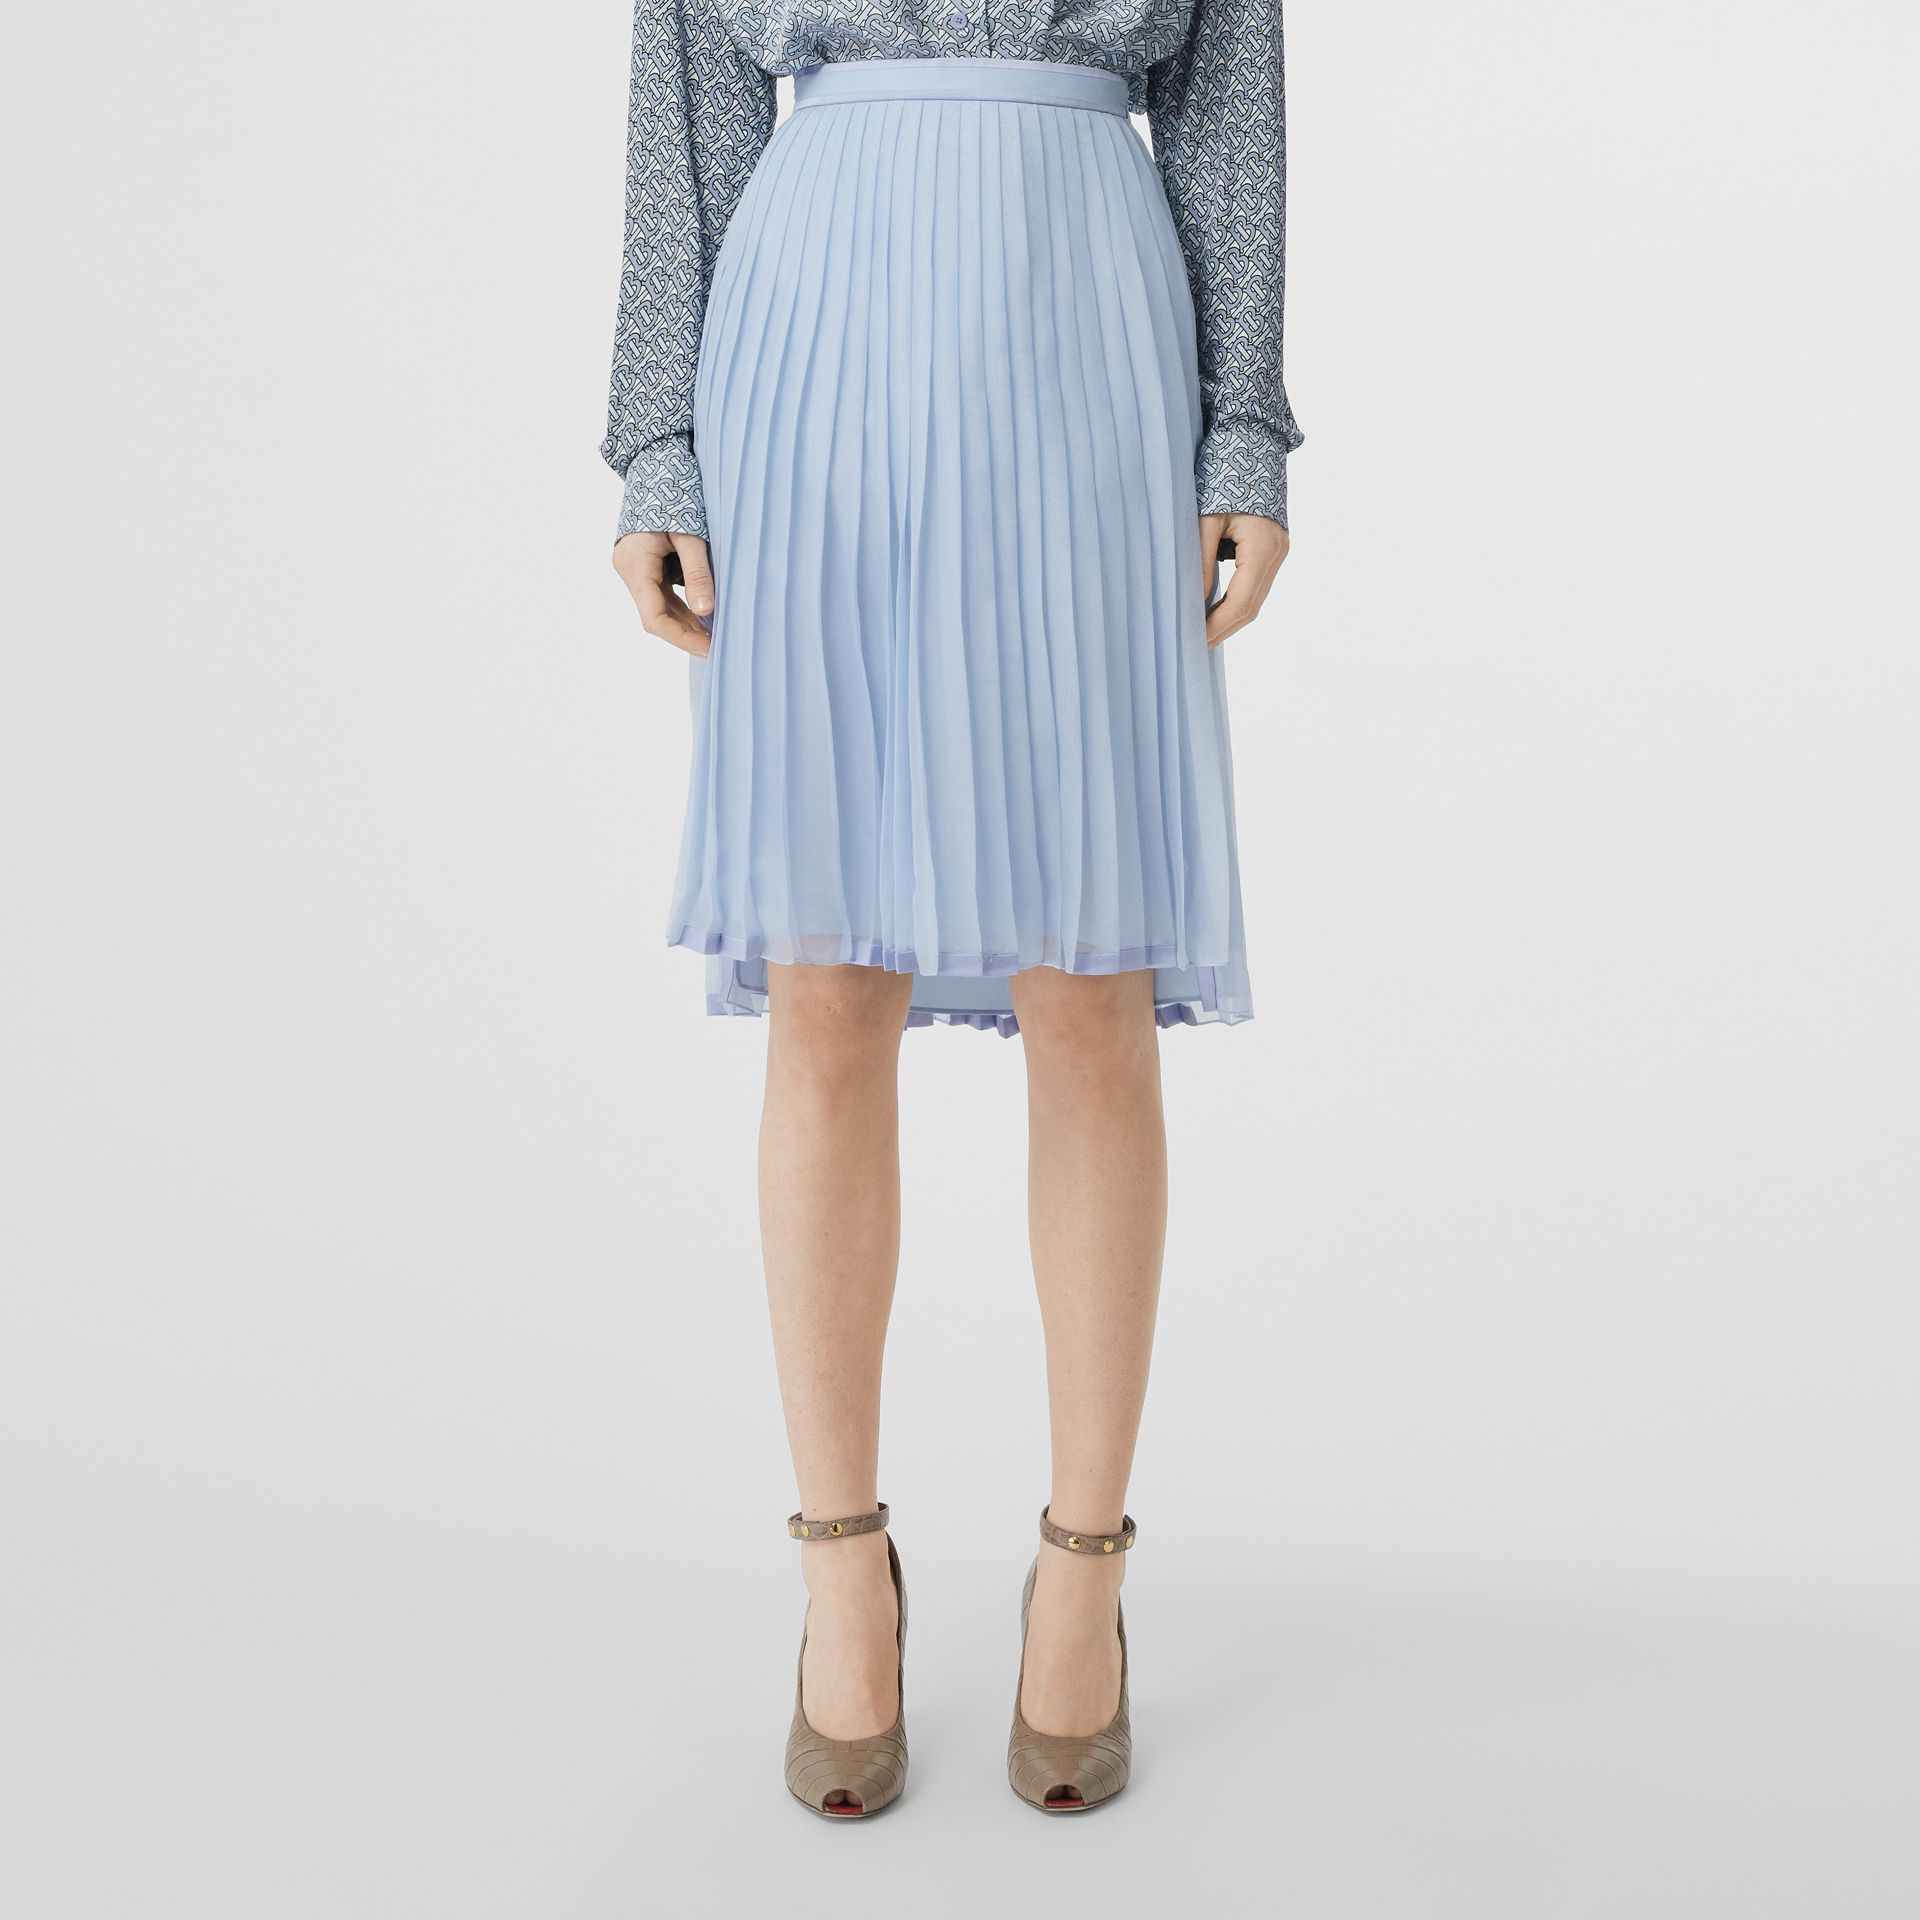 Contrast Trim Pleated Skirt in Pale Blue - Women | Burberry United Kingdom - gallery image 4